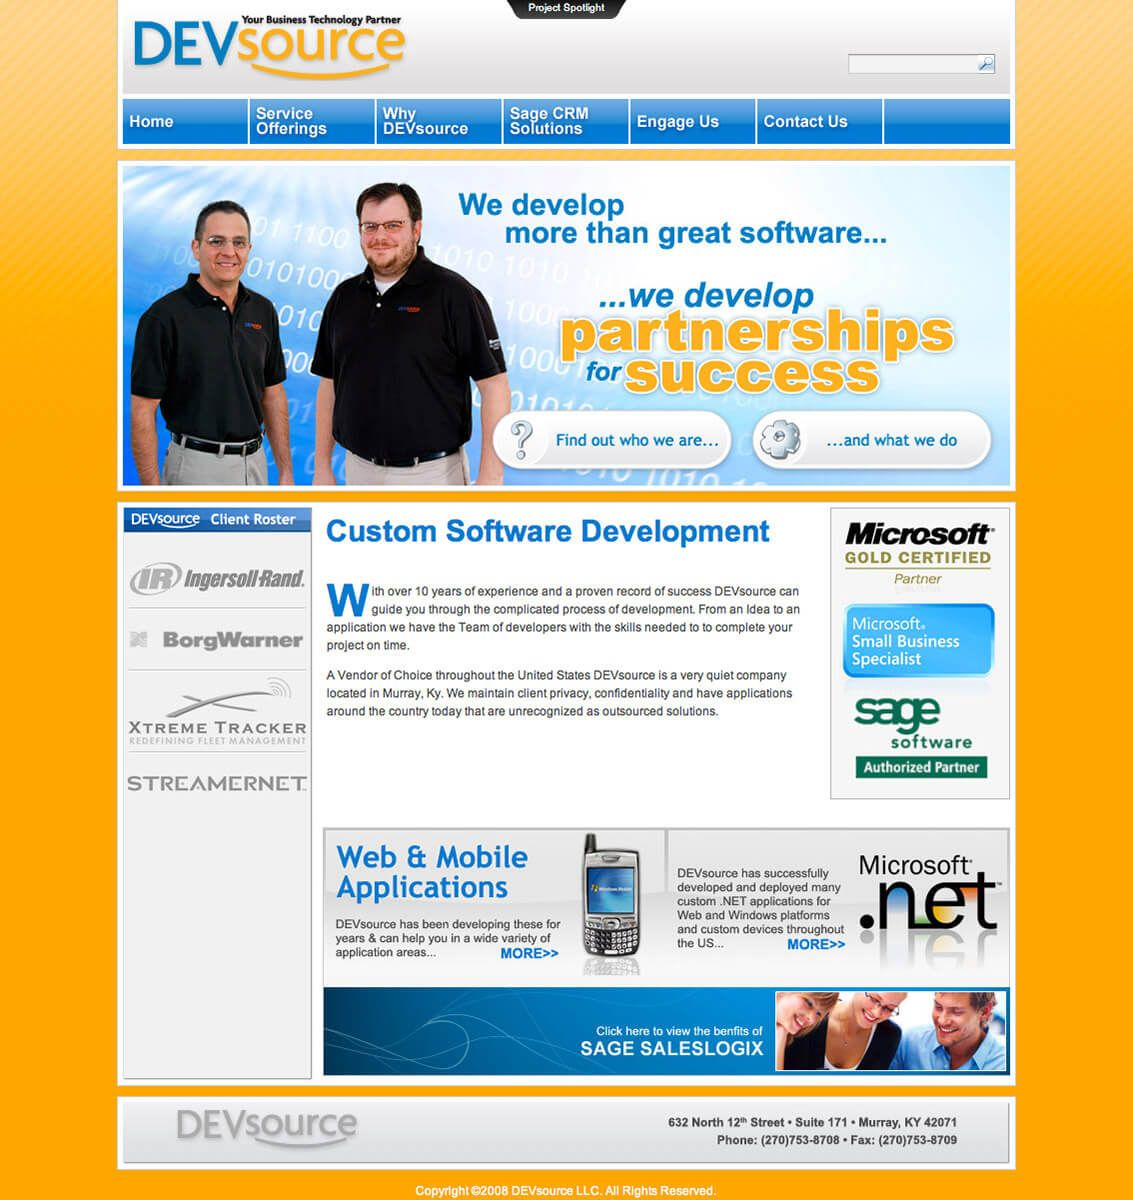 DEVsource website by EyeSite Creations